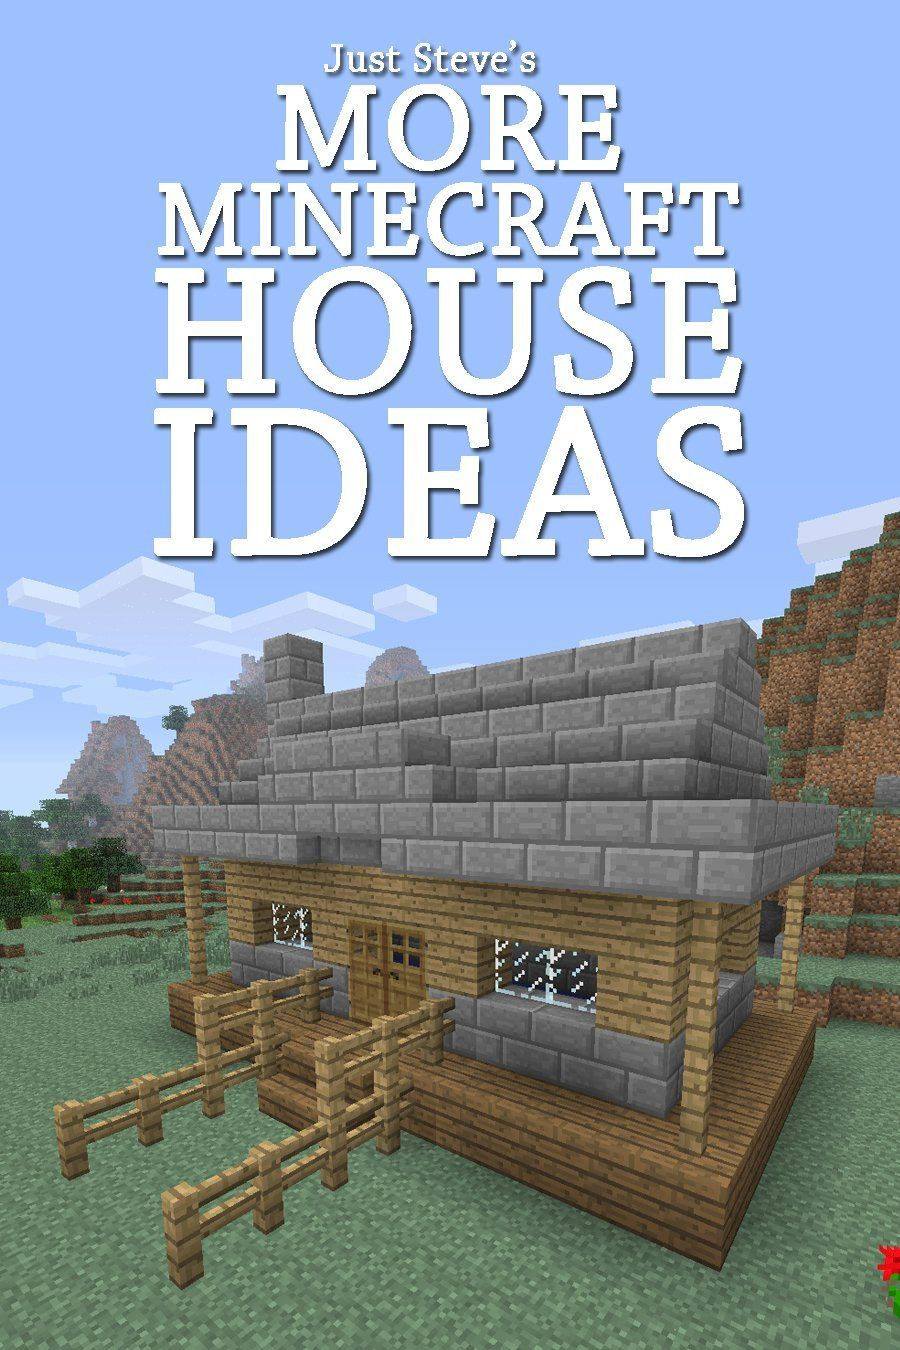 More minecraft house ideas a collection of house ideas and more minecraft house ideas a collection of house ideas and blueprints in this minecraft house guide malvernweather Images